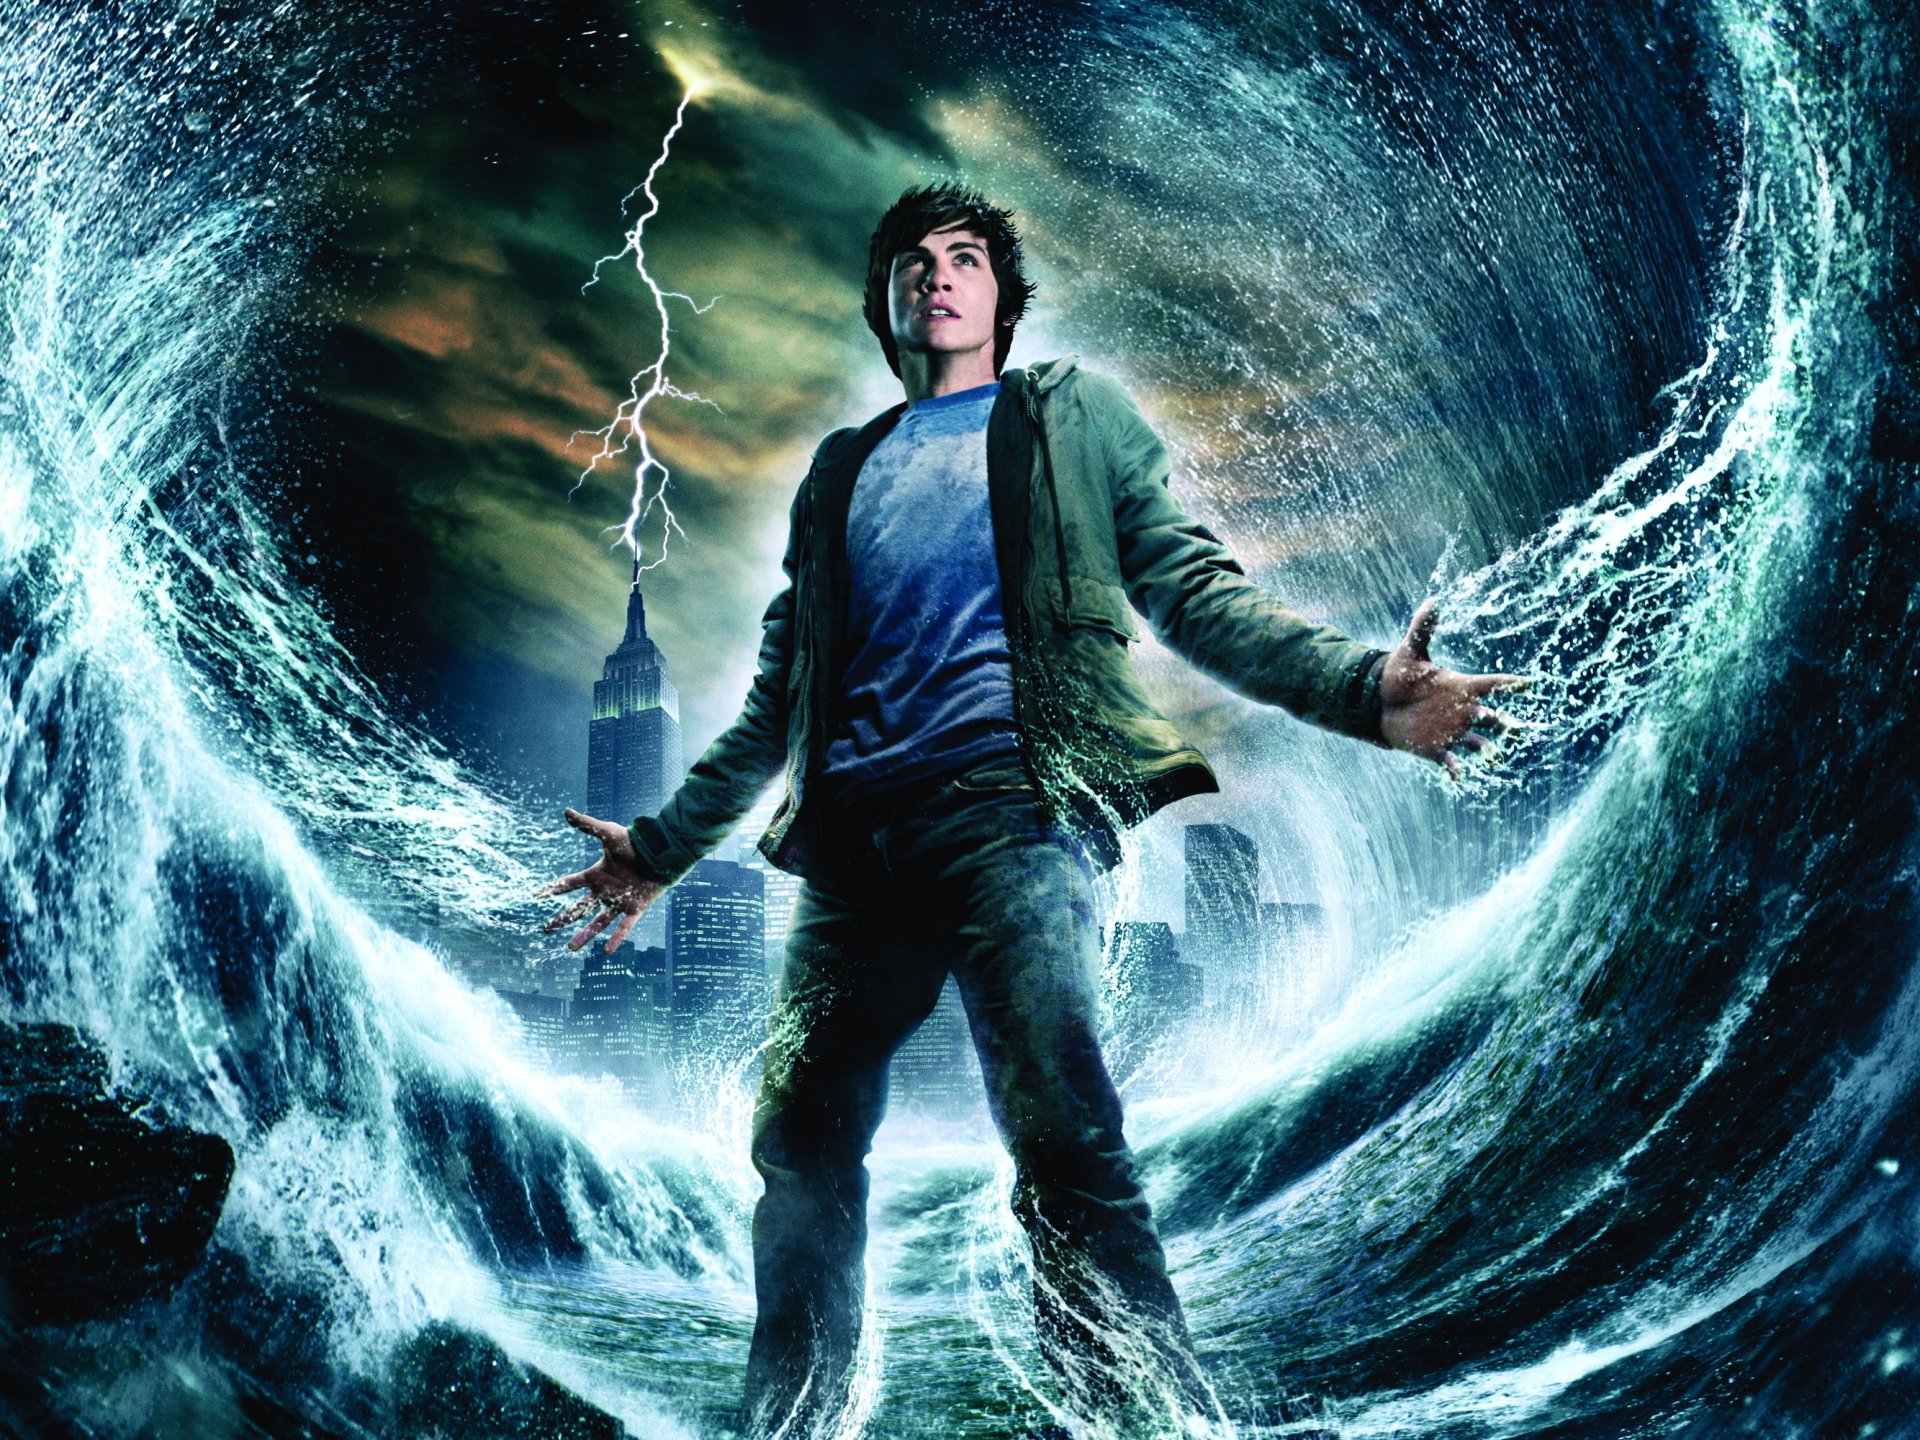 19 Percy Jackson The Olympians The Lightning Thief Hd Wallpapers Background Images Wallpaper Abyss